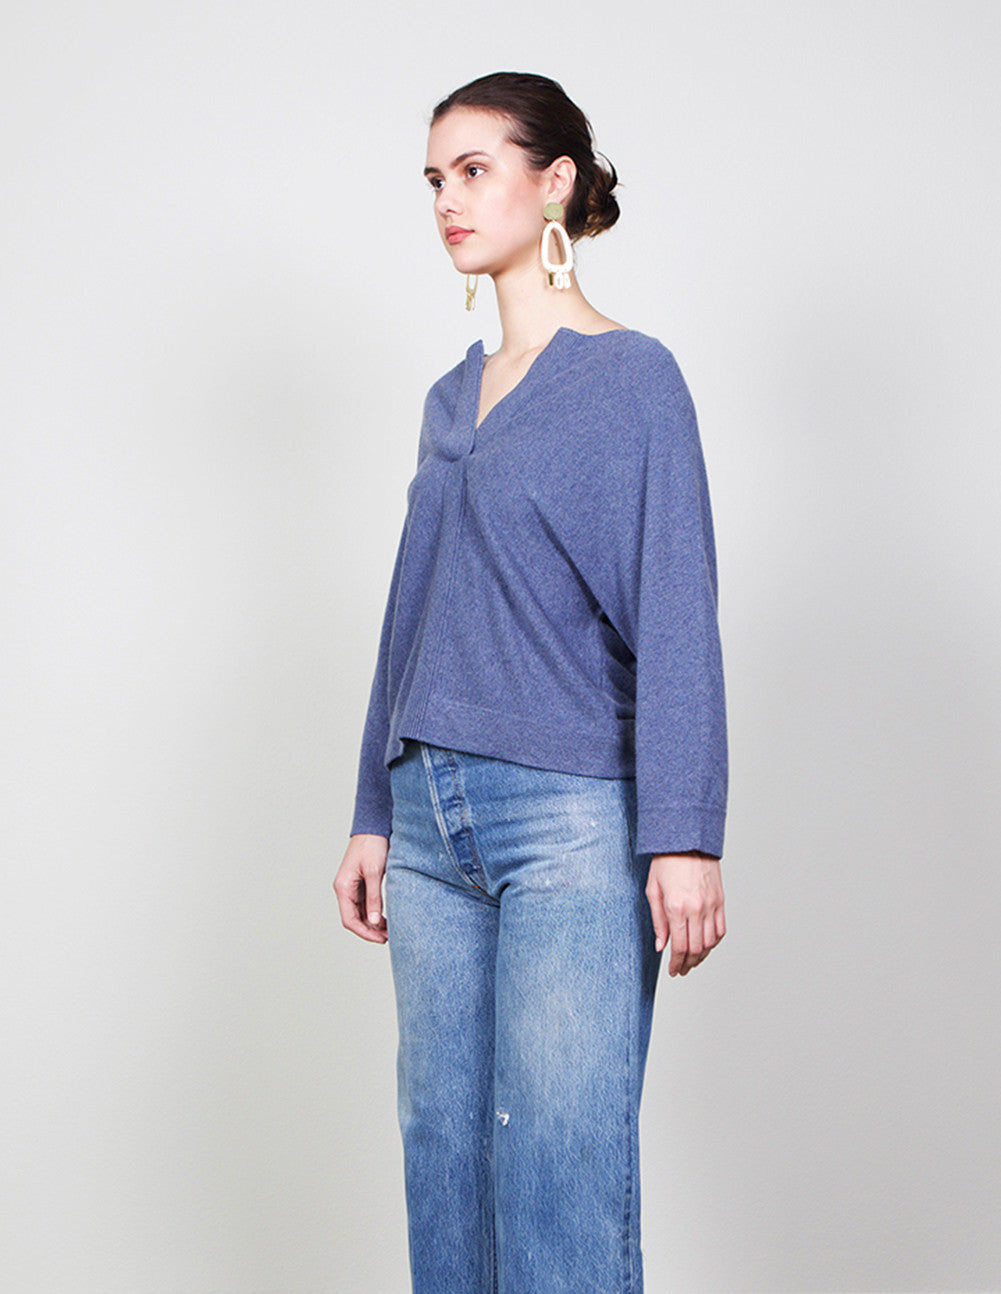 Knit Willa Top